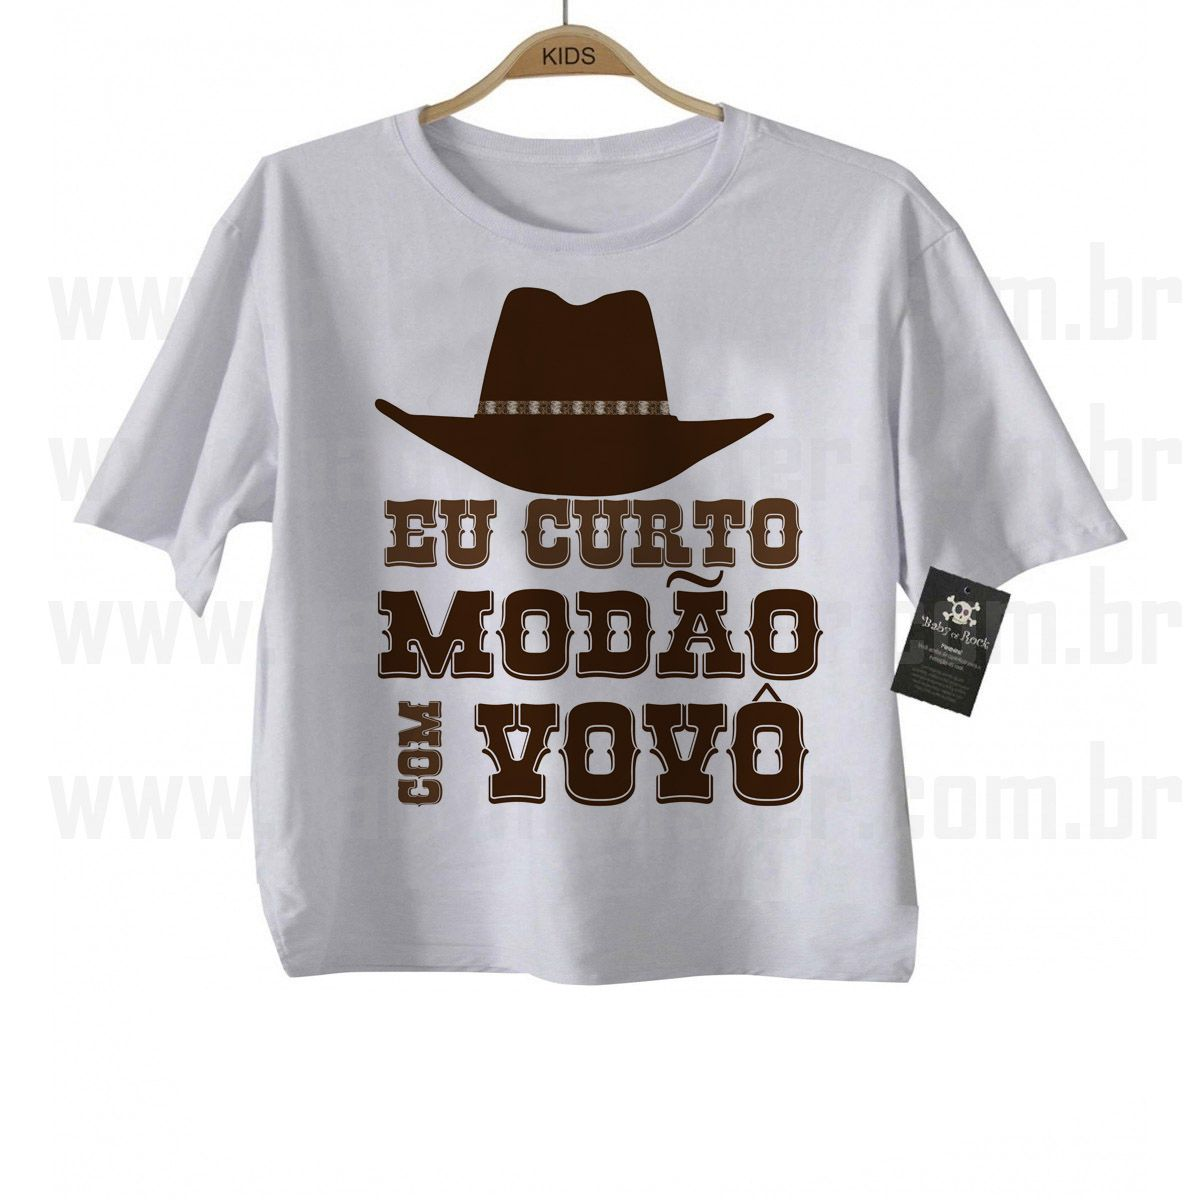 Camiseta Sertanejo Curto Modão com o Vovô- White  - Baby Monster S/A